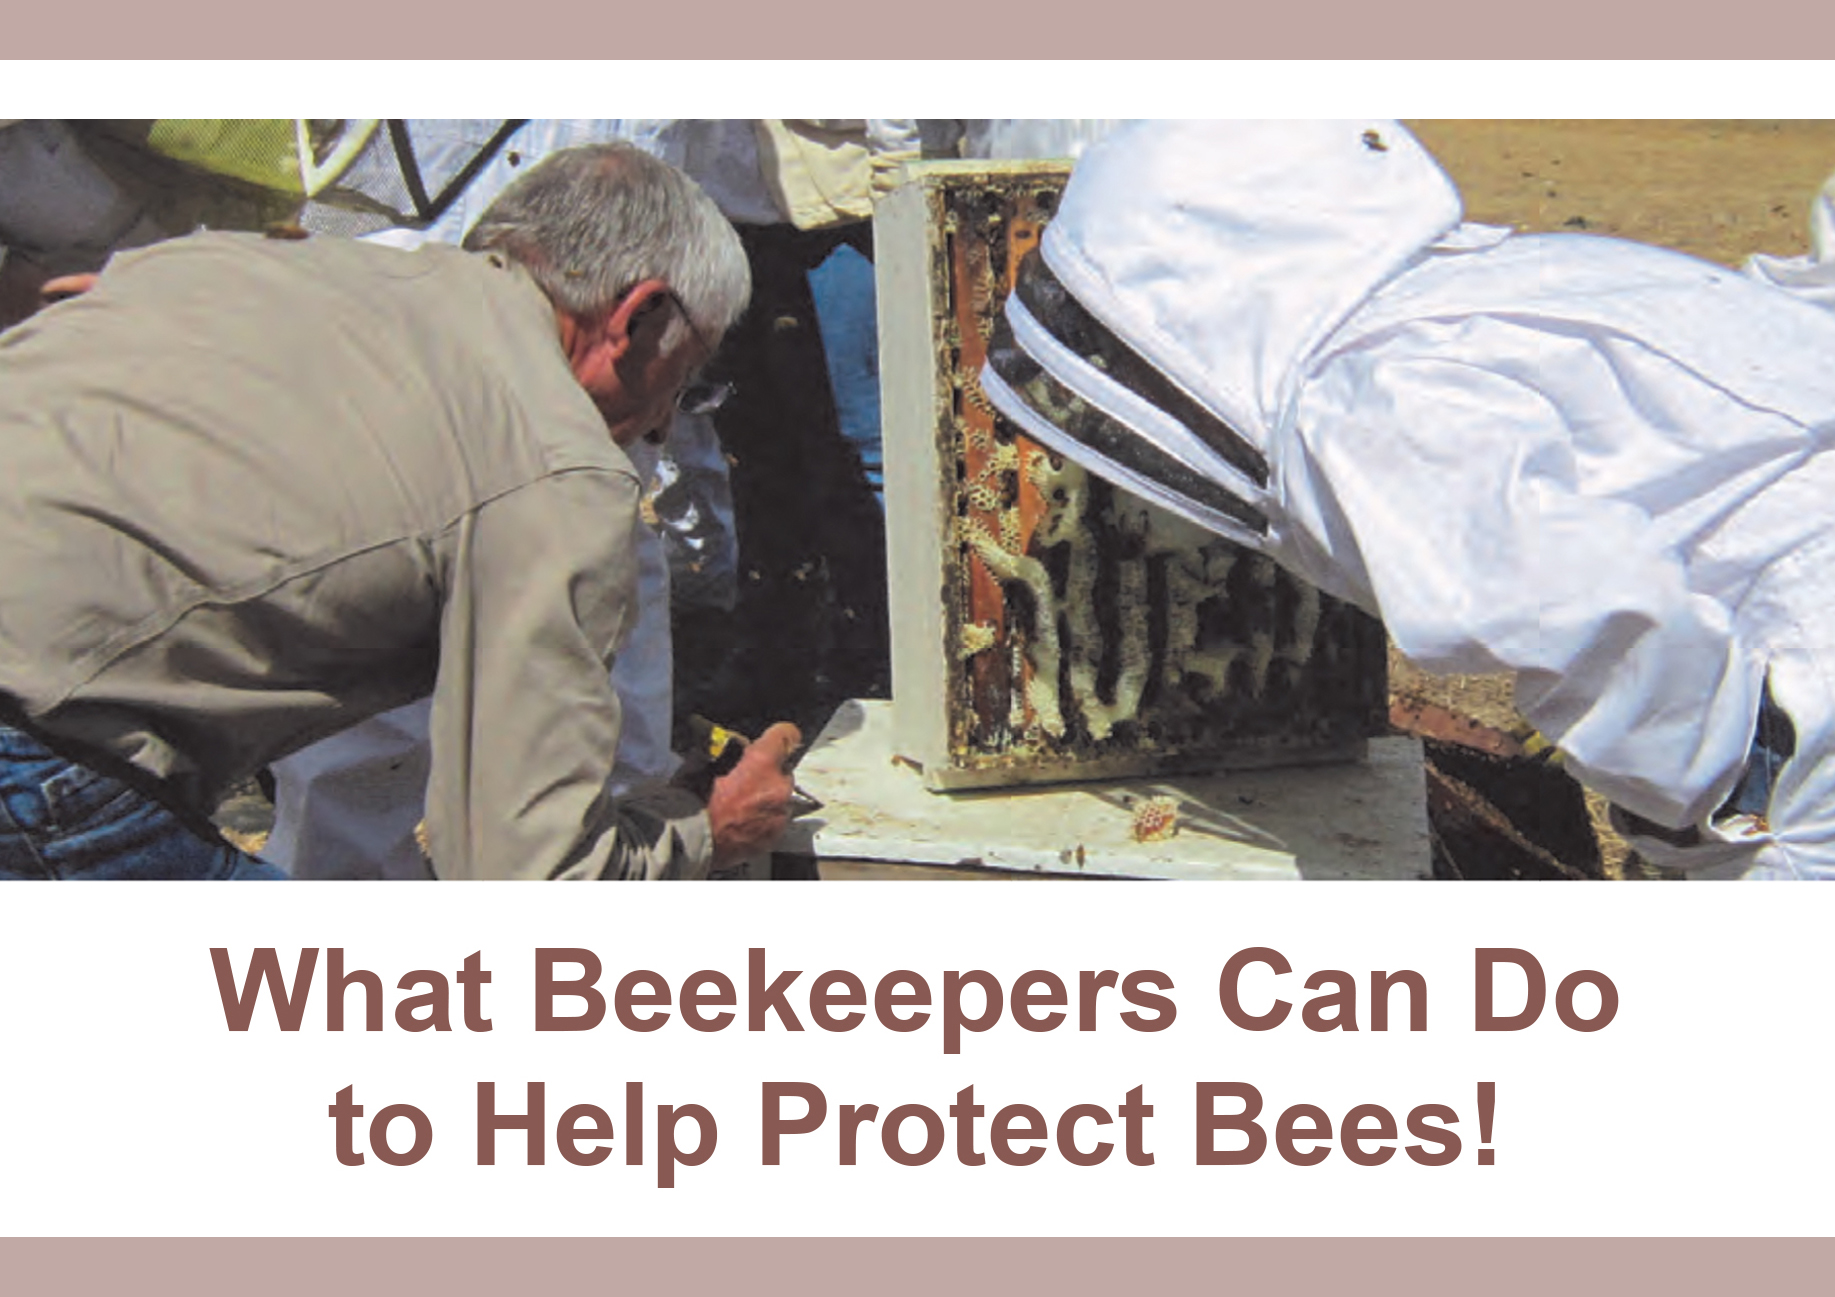 What Beekeepers Can Do to Help Protect Bees!